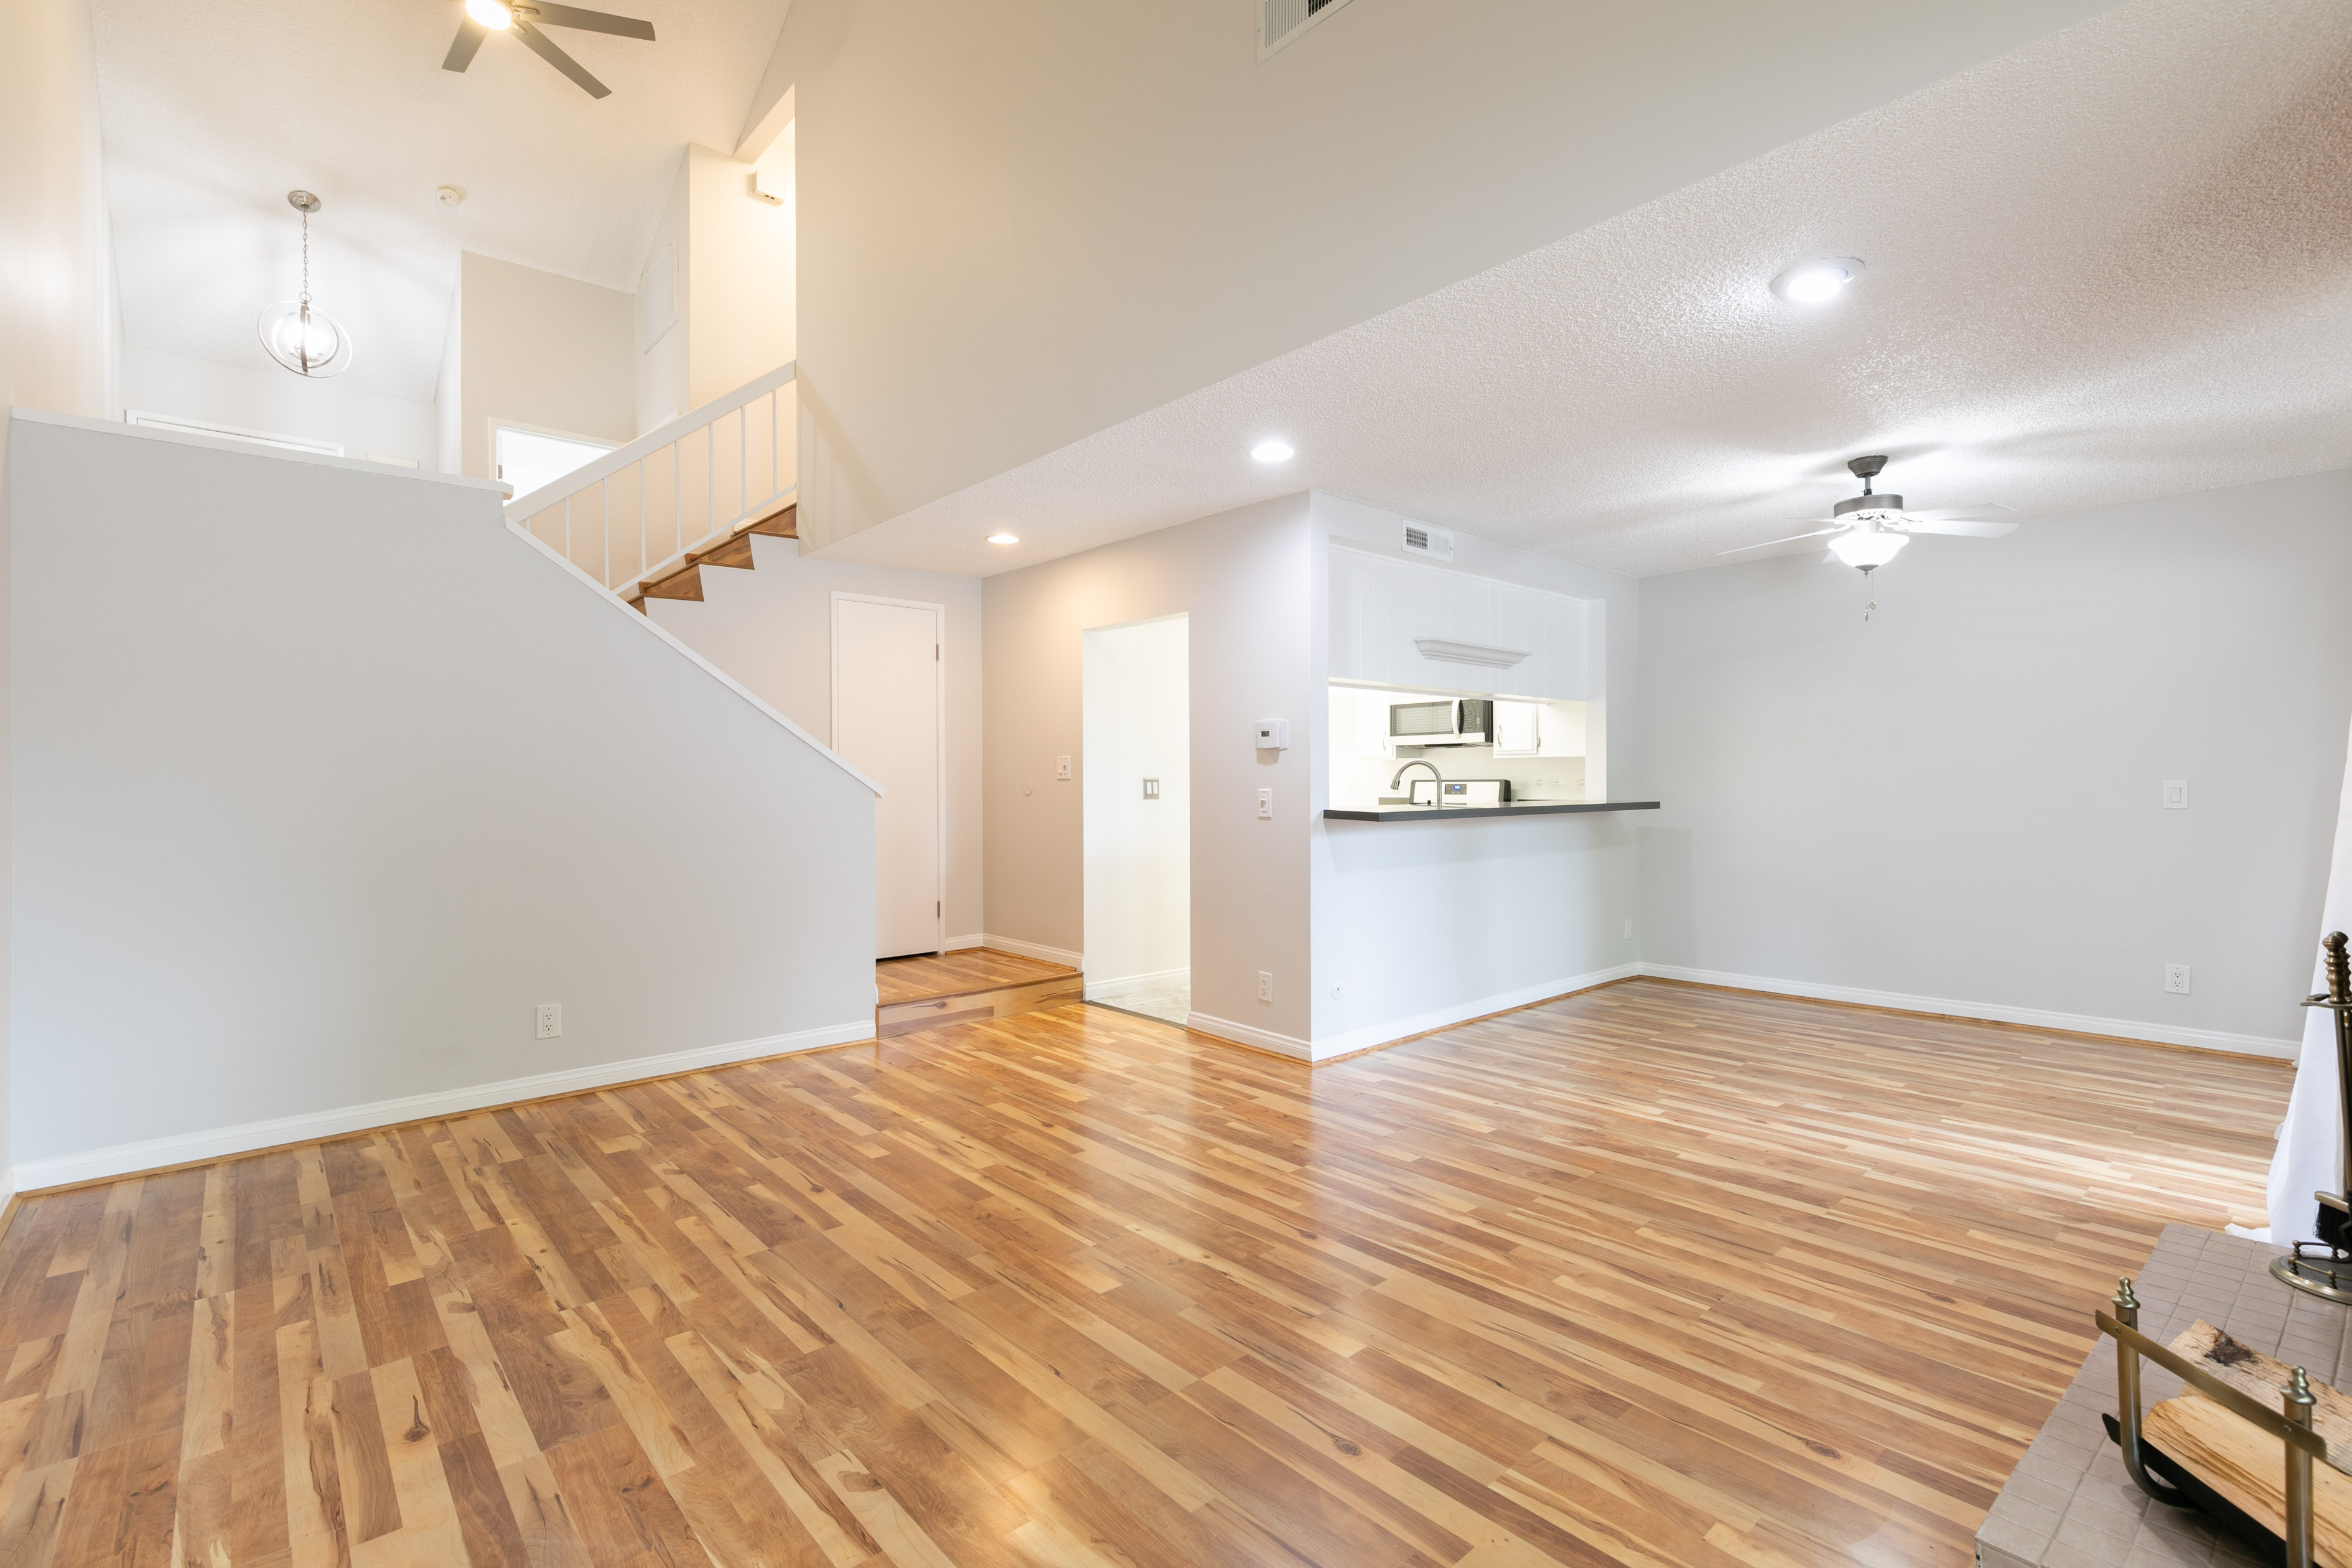 Amazing tri-level condo with community pool, gym, and gated entry!